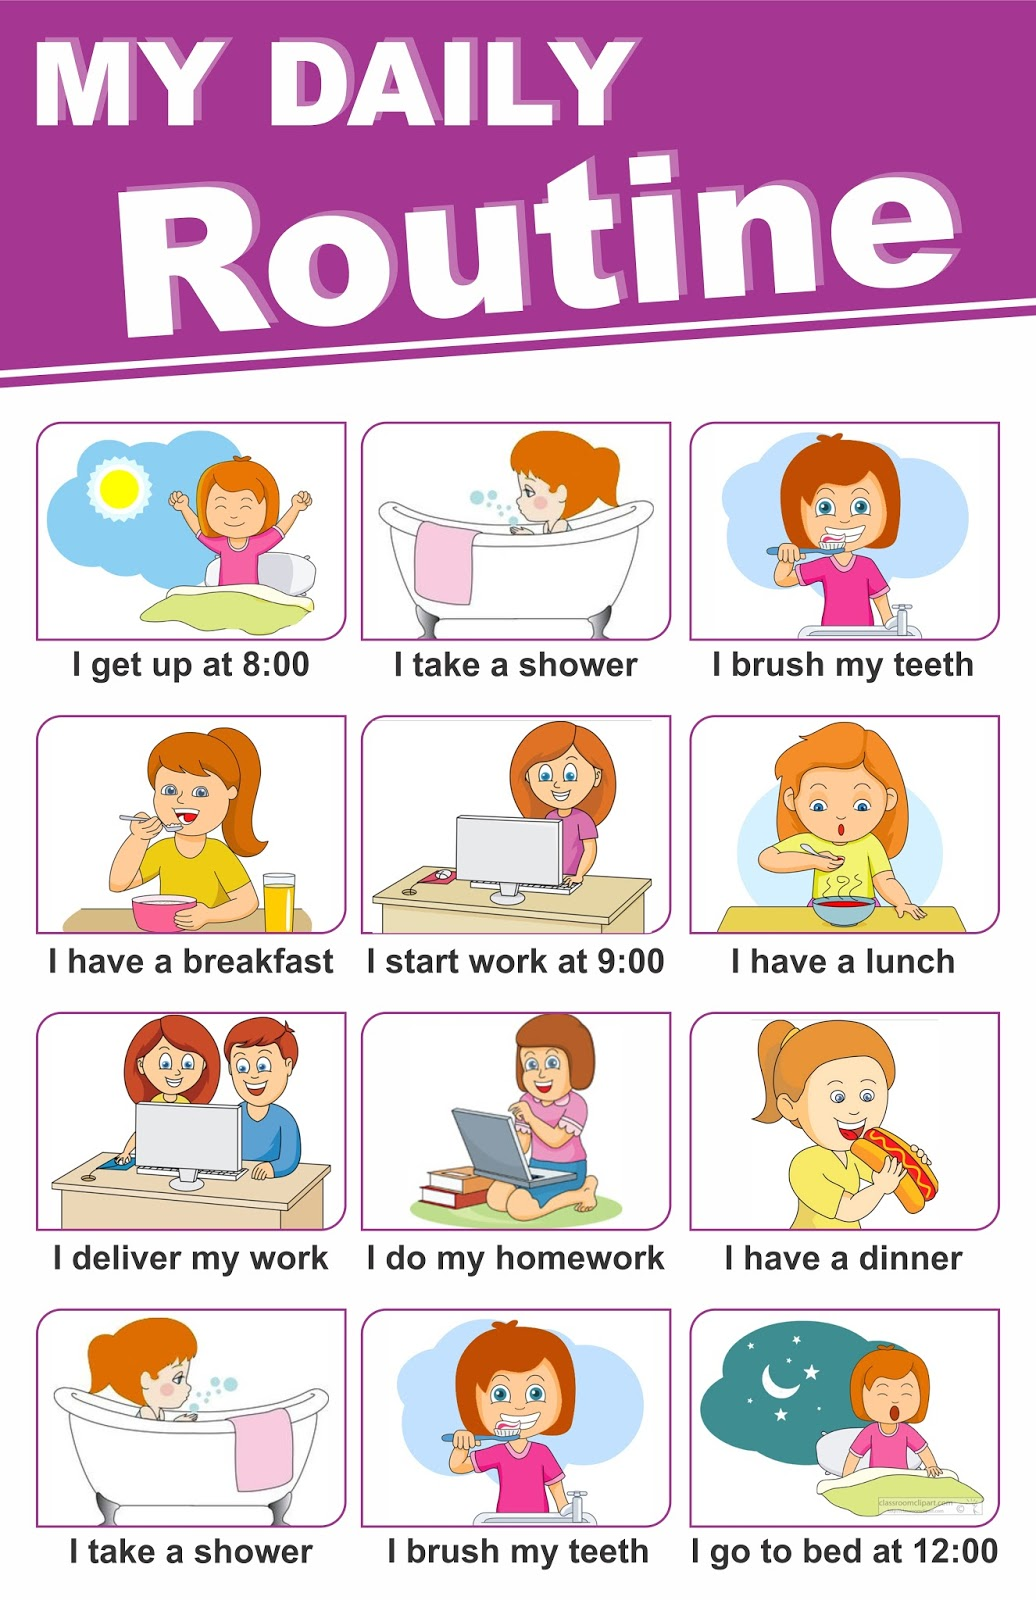 My Daily Routine My Daily Life How I Spend My Daily Life